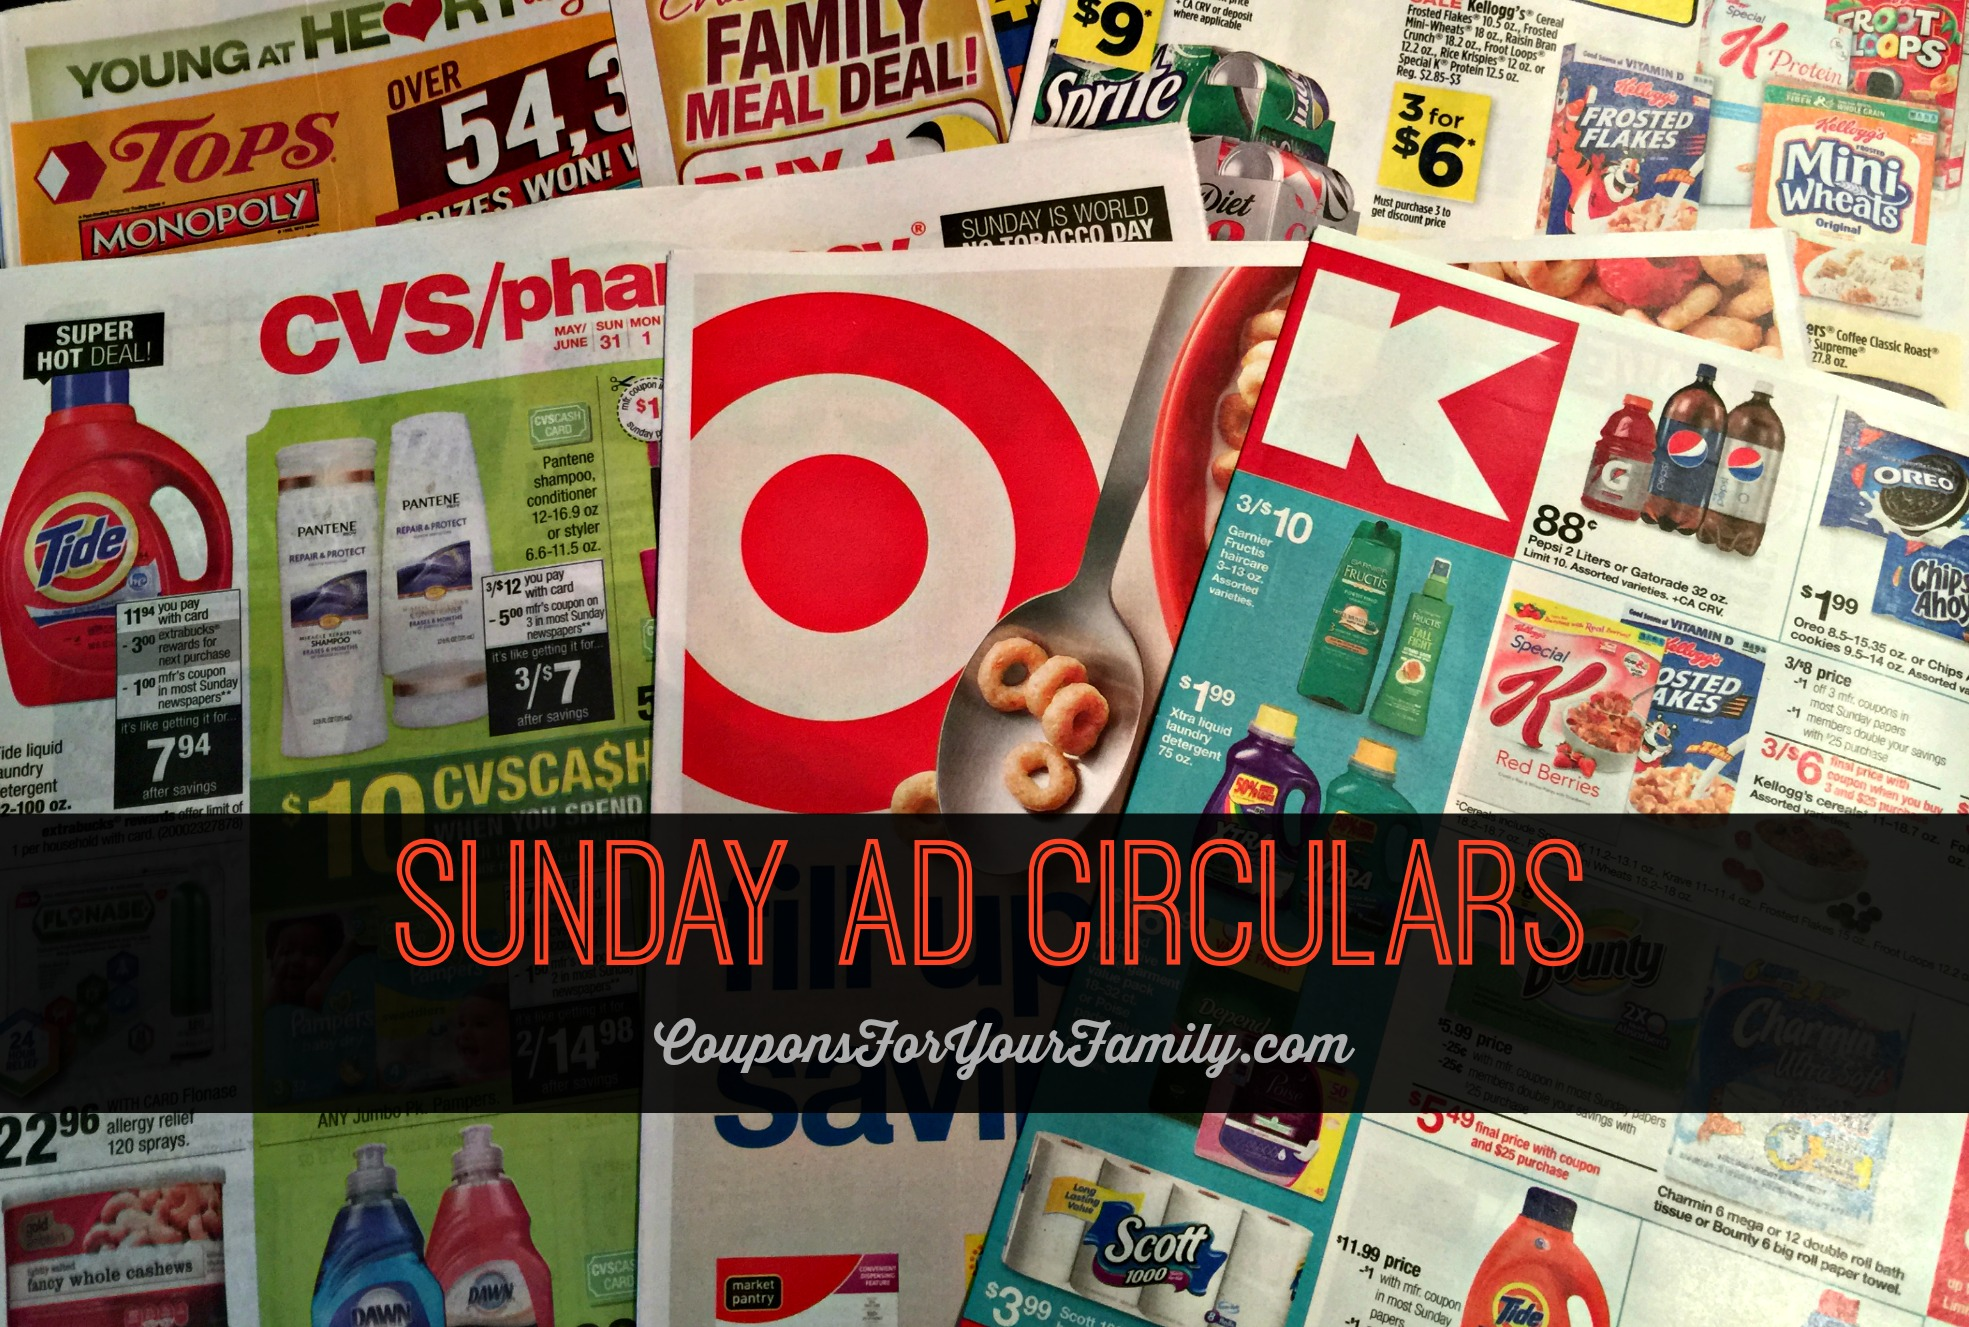 Preview your Stores Sunday Circular and Sales Ad here